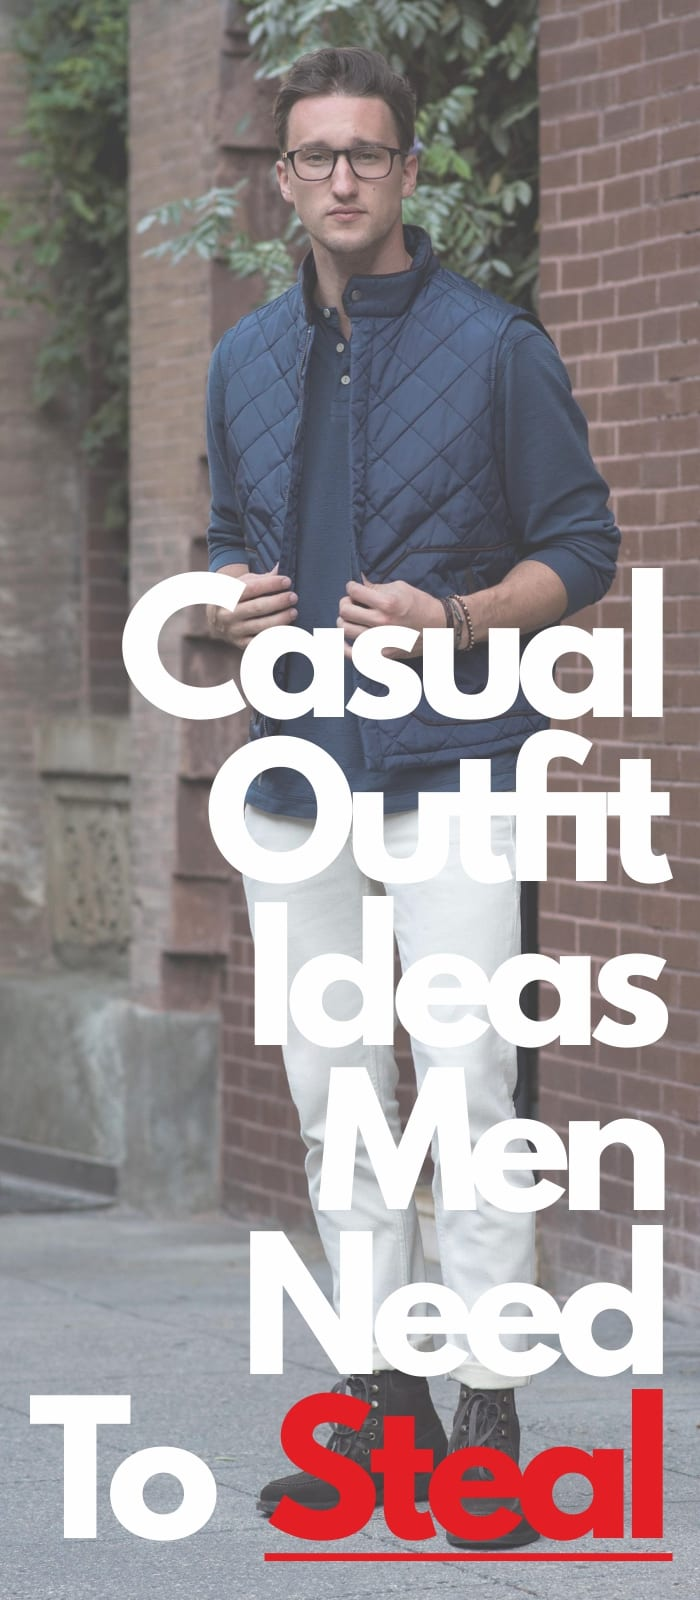 Casual Outfit Ideas Men Need To Steal